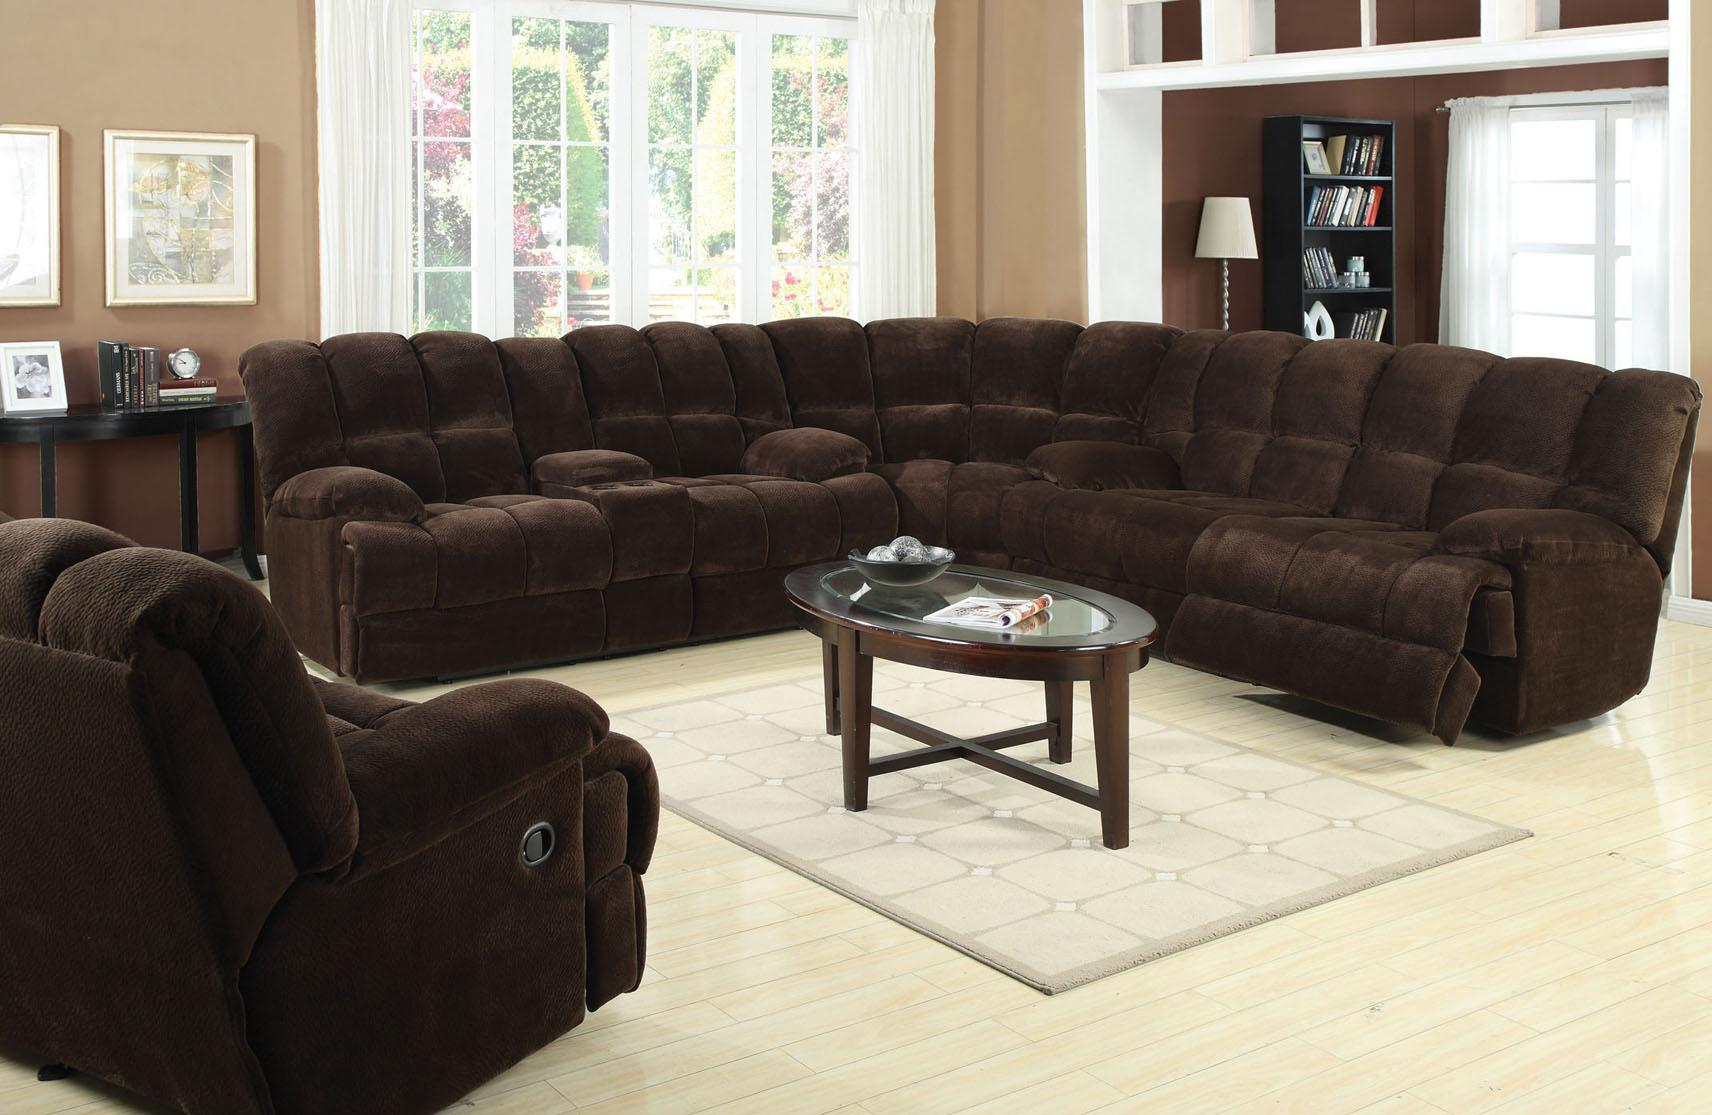 Ahearn Sectional Sofa by Acme Furniture at Rooms for Less